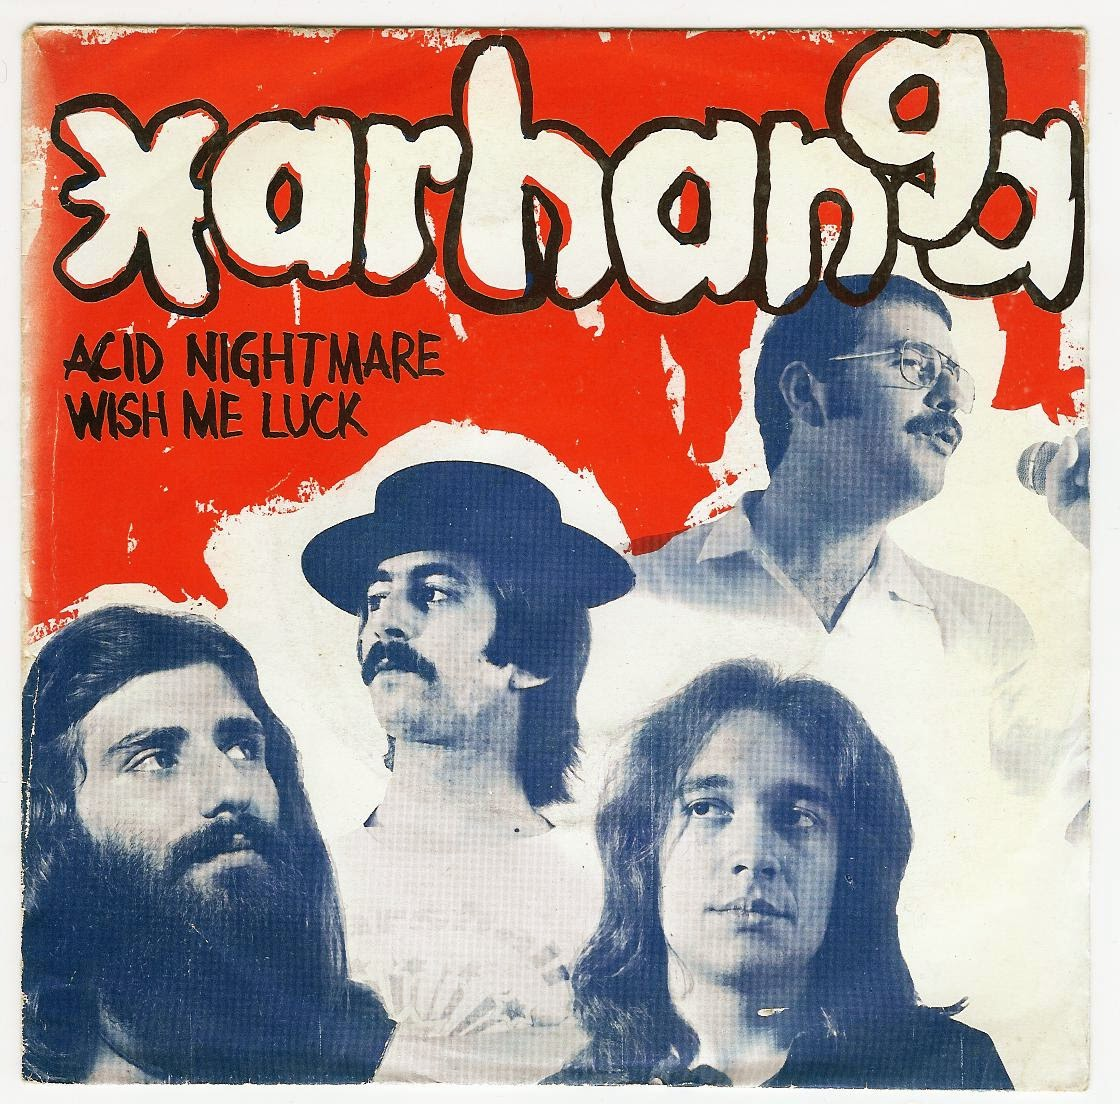 Xarhanga Acid Nightmare single 1973